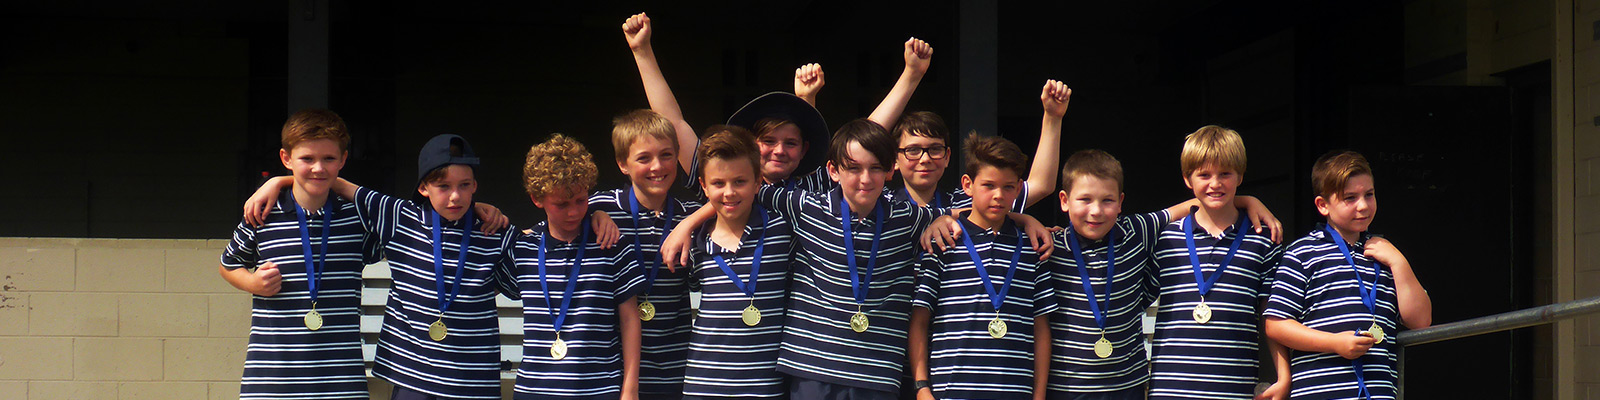 Y5 Touch Rugby Carnival champions